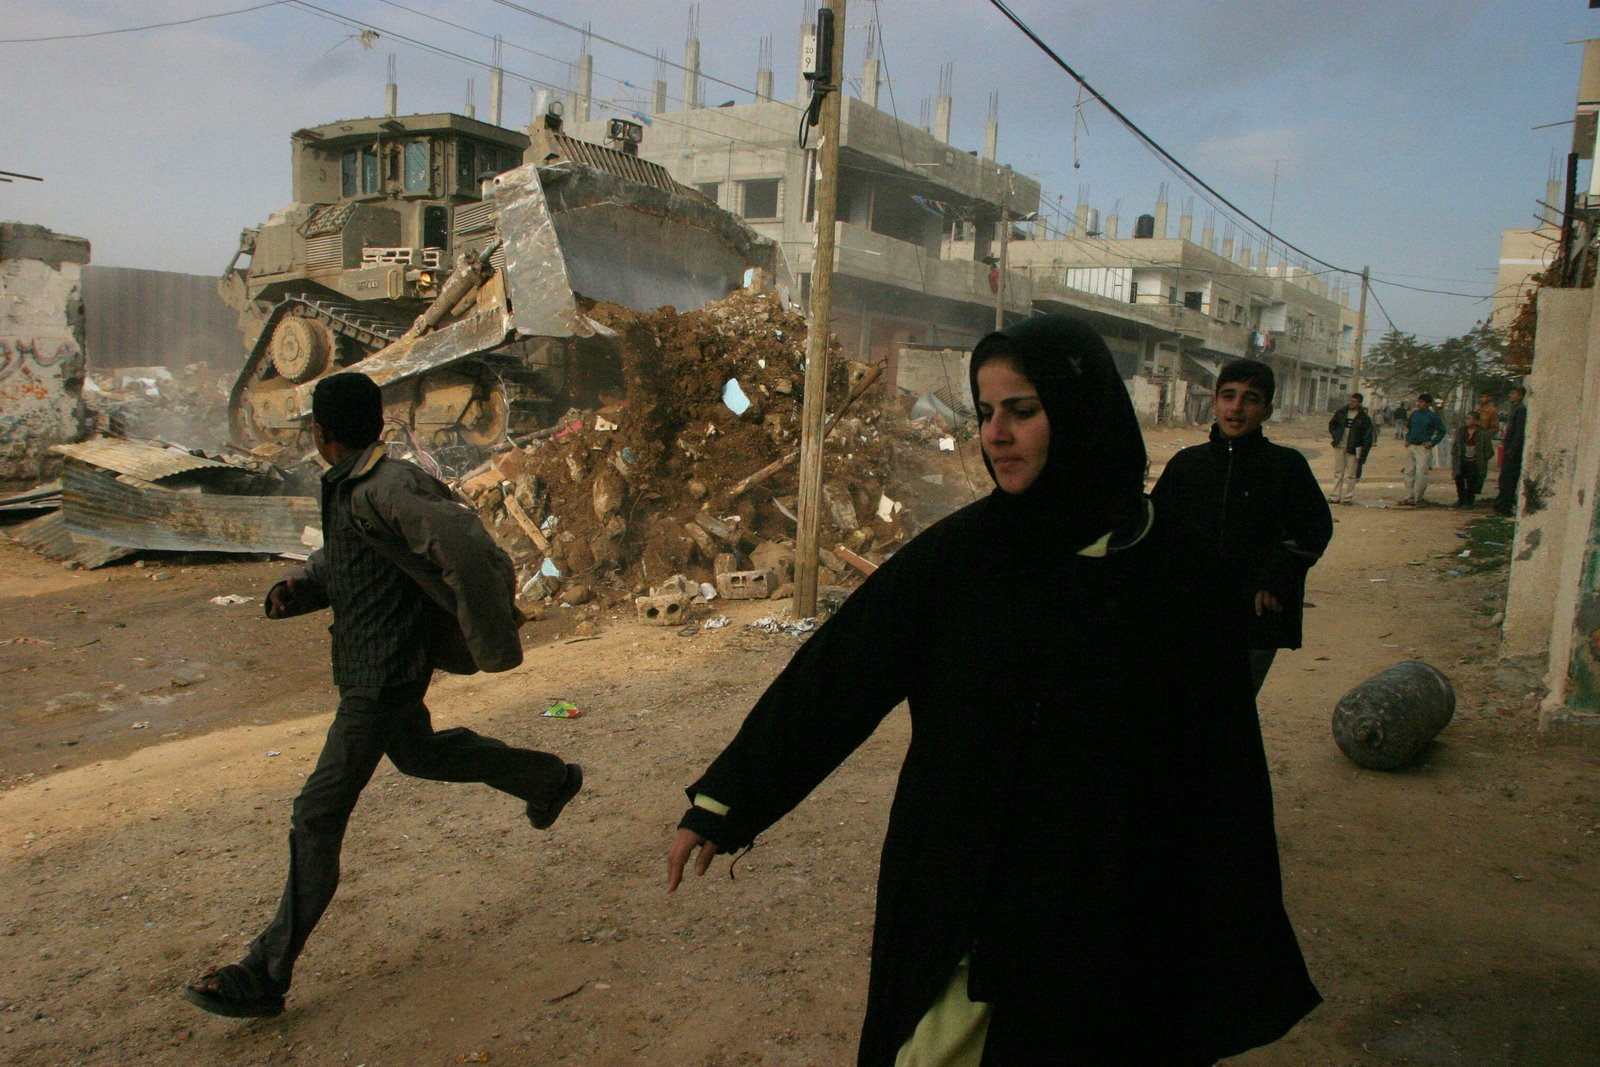 Palestinians run infront an israeli bulldozer as it destroy houses next to the border of Egypt at the Rafah refugee camp in the southern of Gaza Strip . Tusday Jan. 20.2004. (AP Photo/Khalil Hamra).